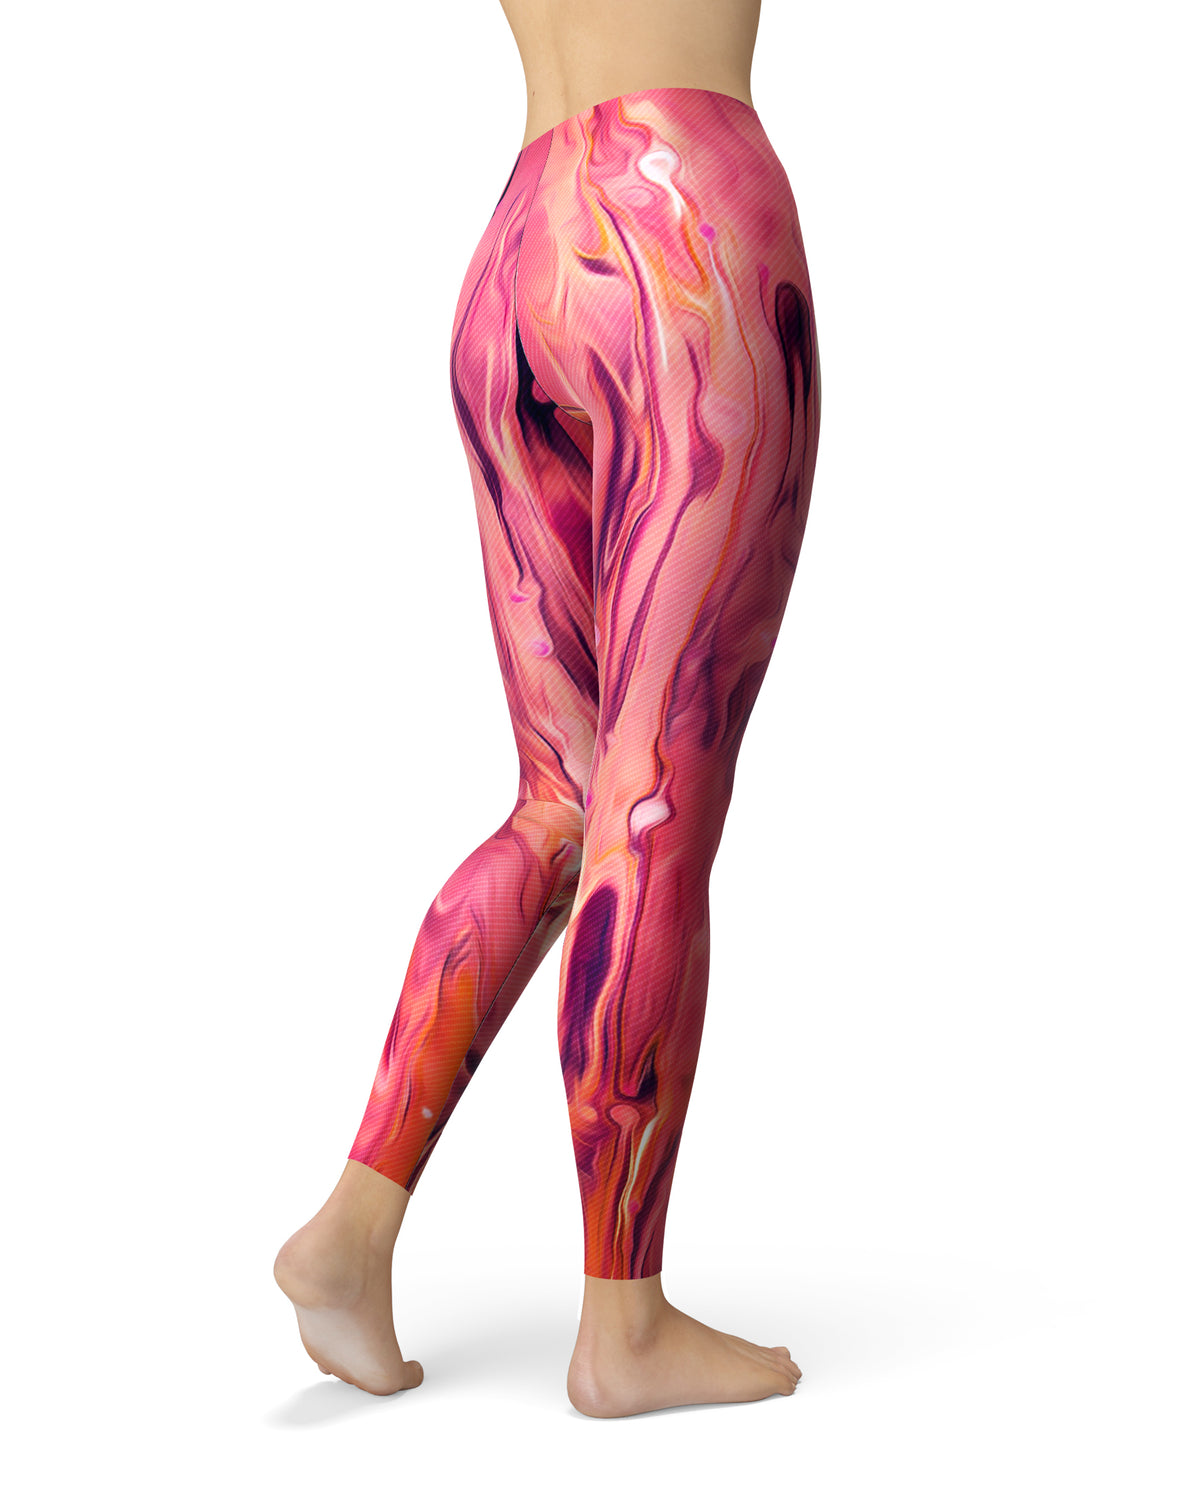 Magnificent Anatomy Workout Pants Pictures Physiology Of Human